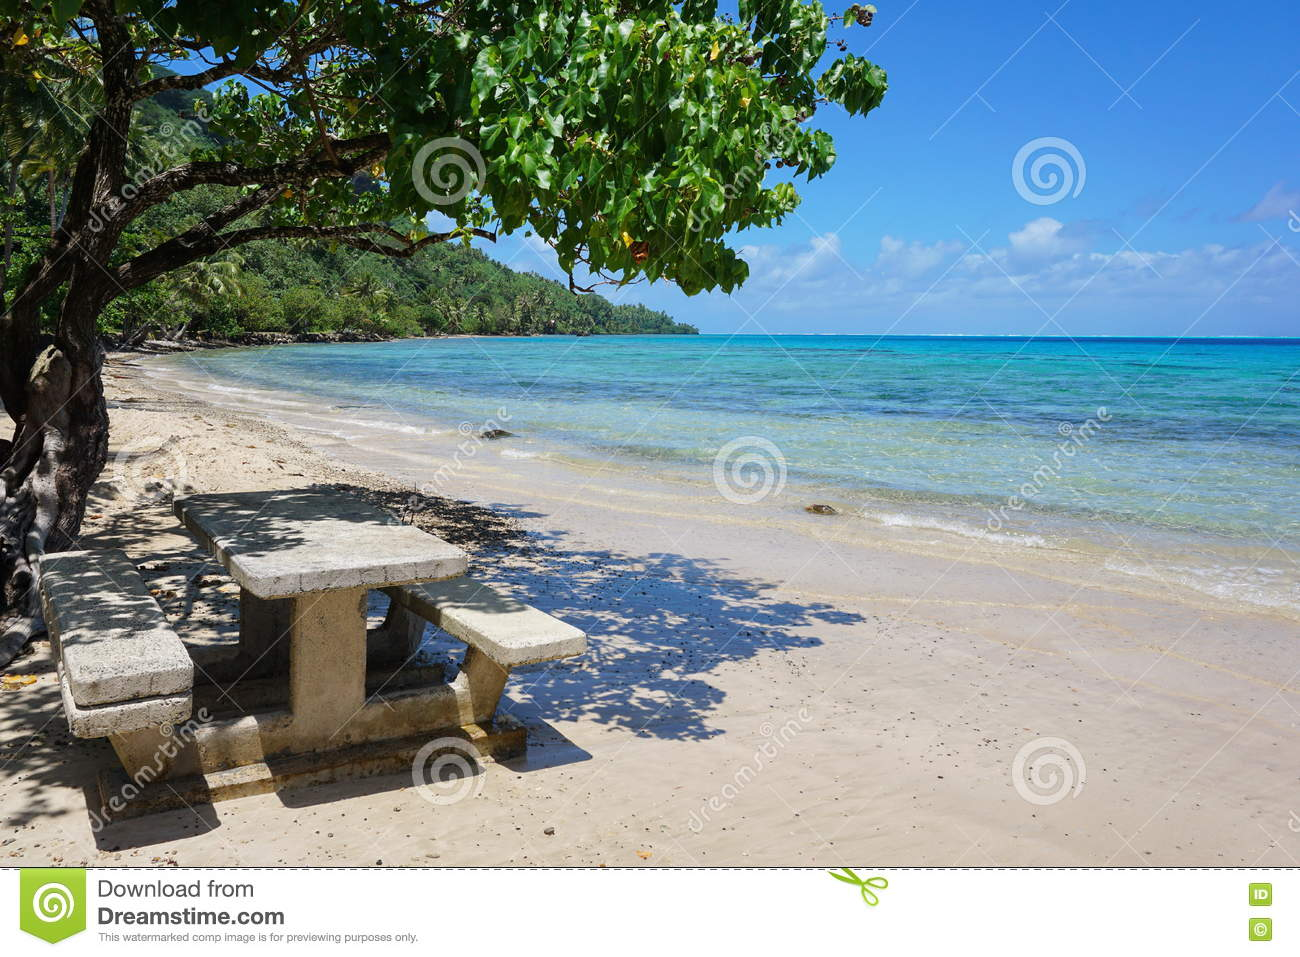 Tropical beach with concrete picnic table on sand